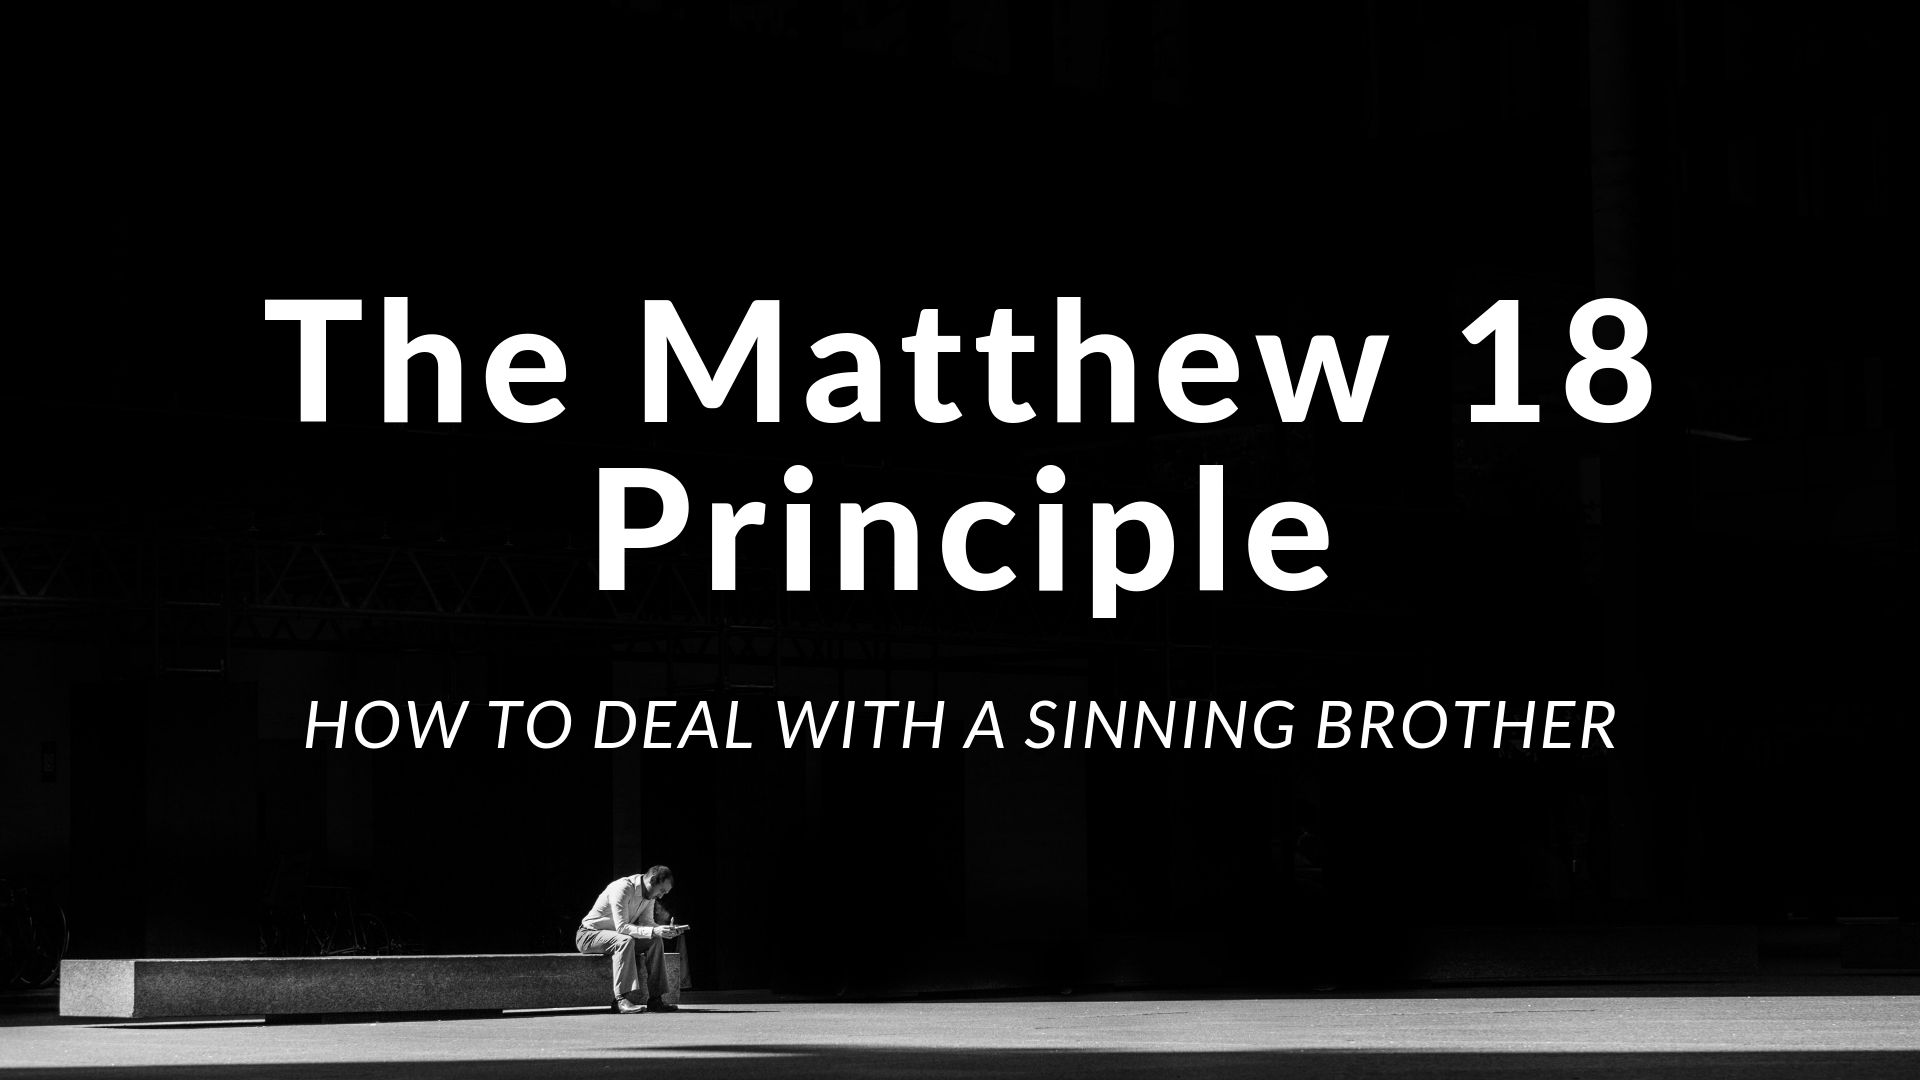 The Matthew 18 Principle How To Deal With A Sinning